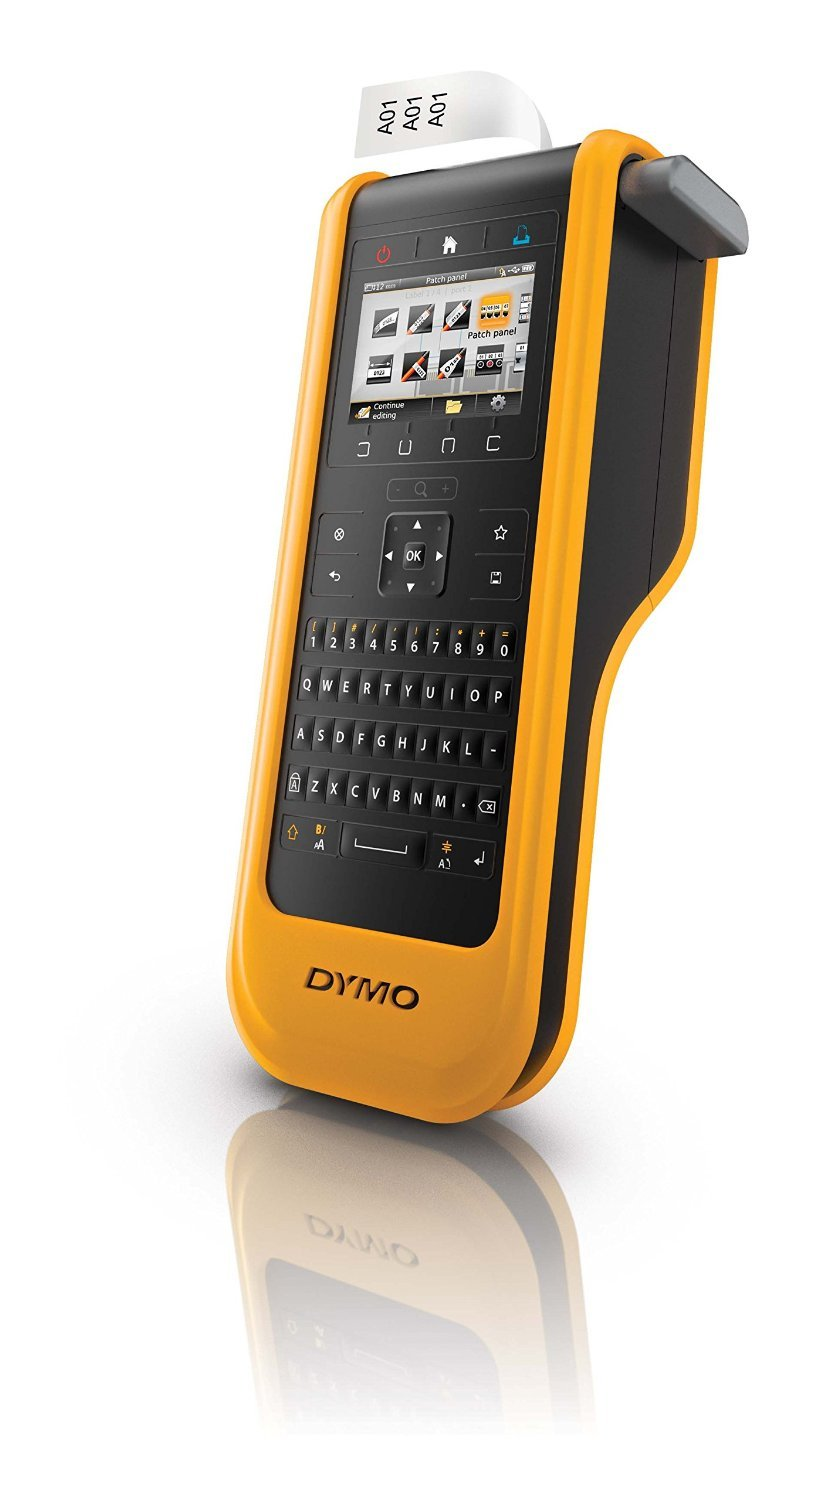 Dymo Xtl 300 Label Maker 1868813 Home Improvement Labeling Tool Qwerty Keyboard 1801611 Makers Electronics